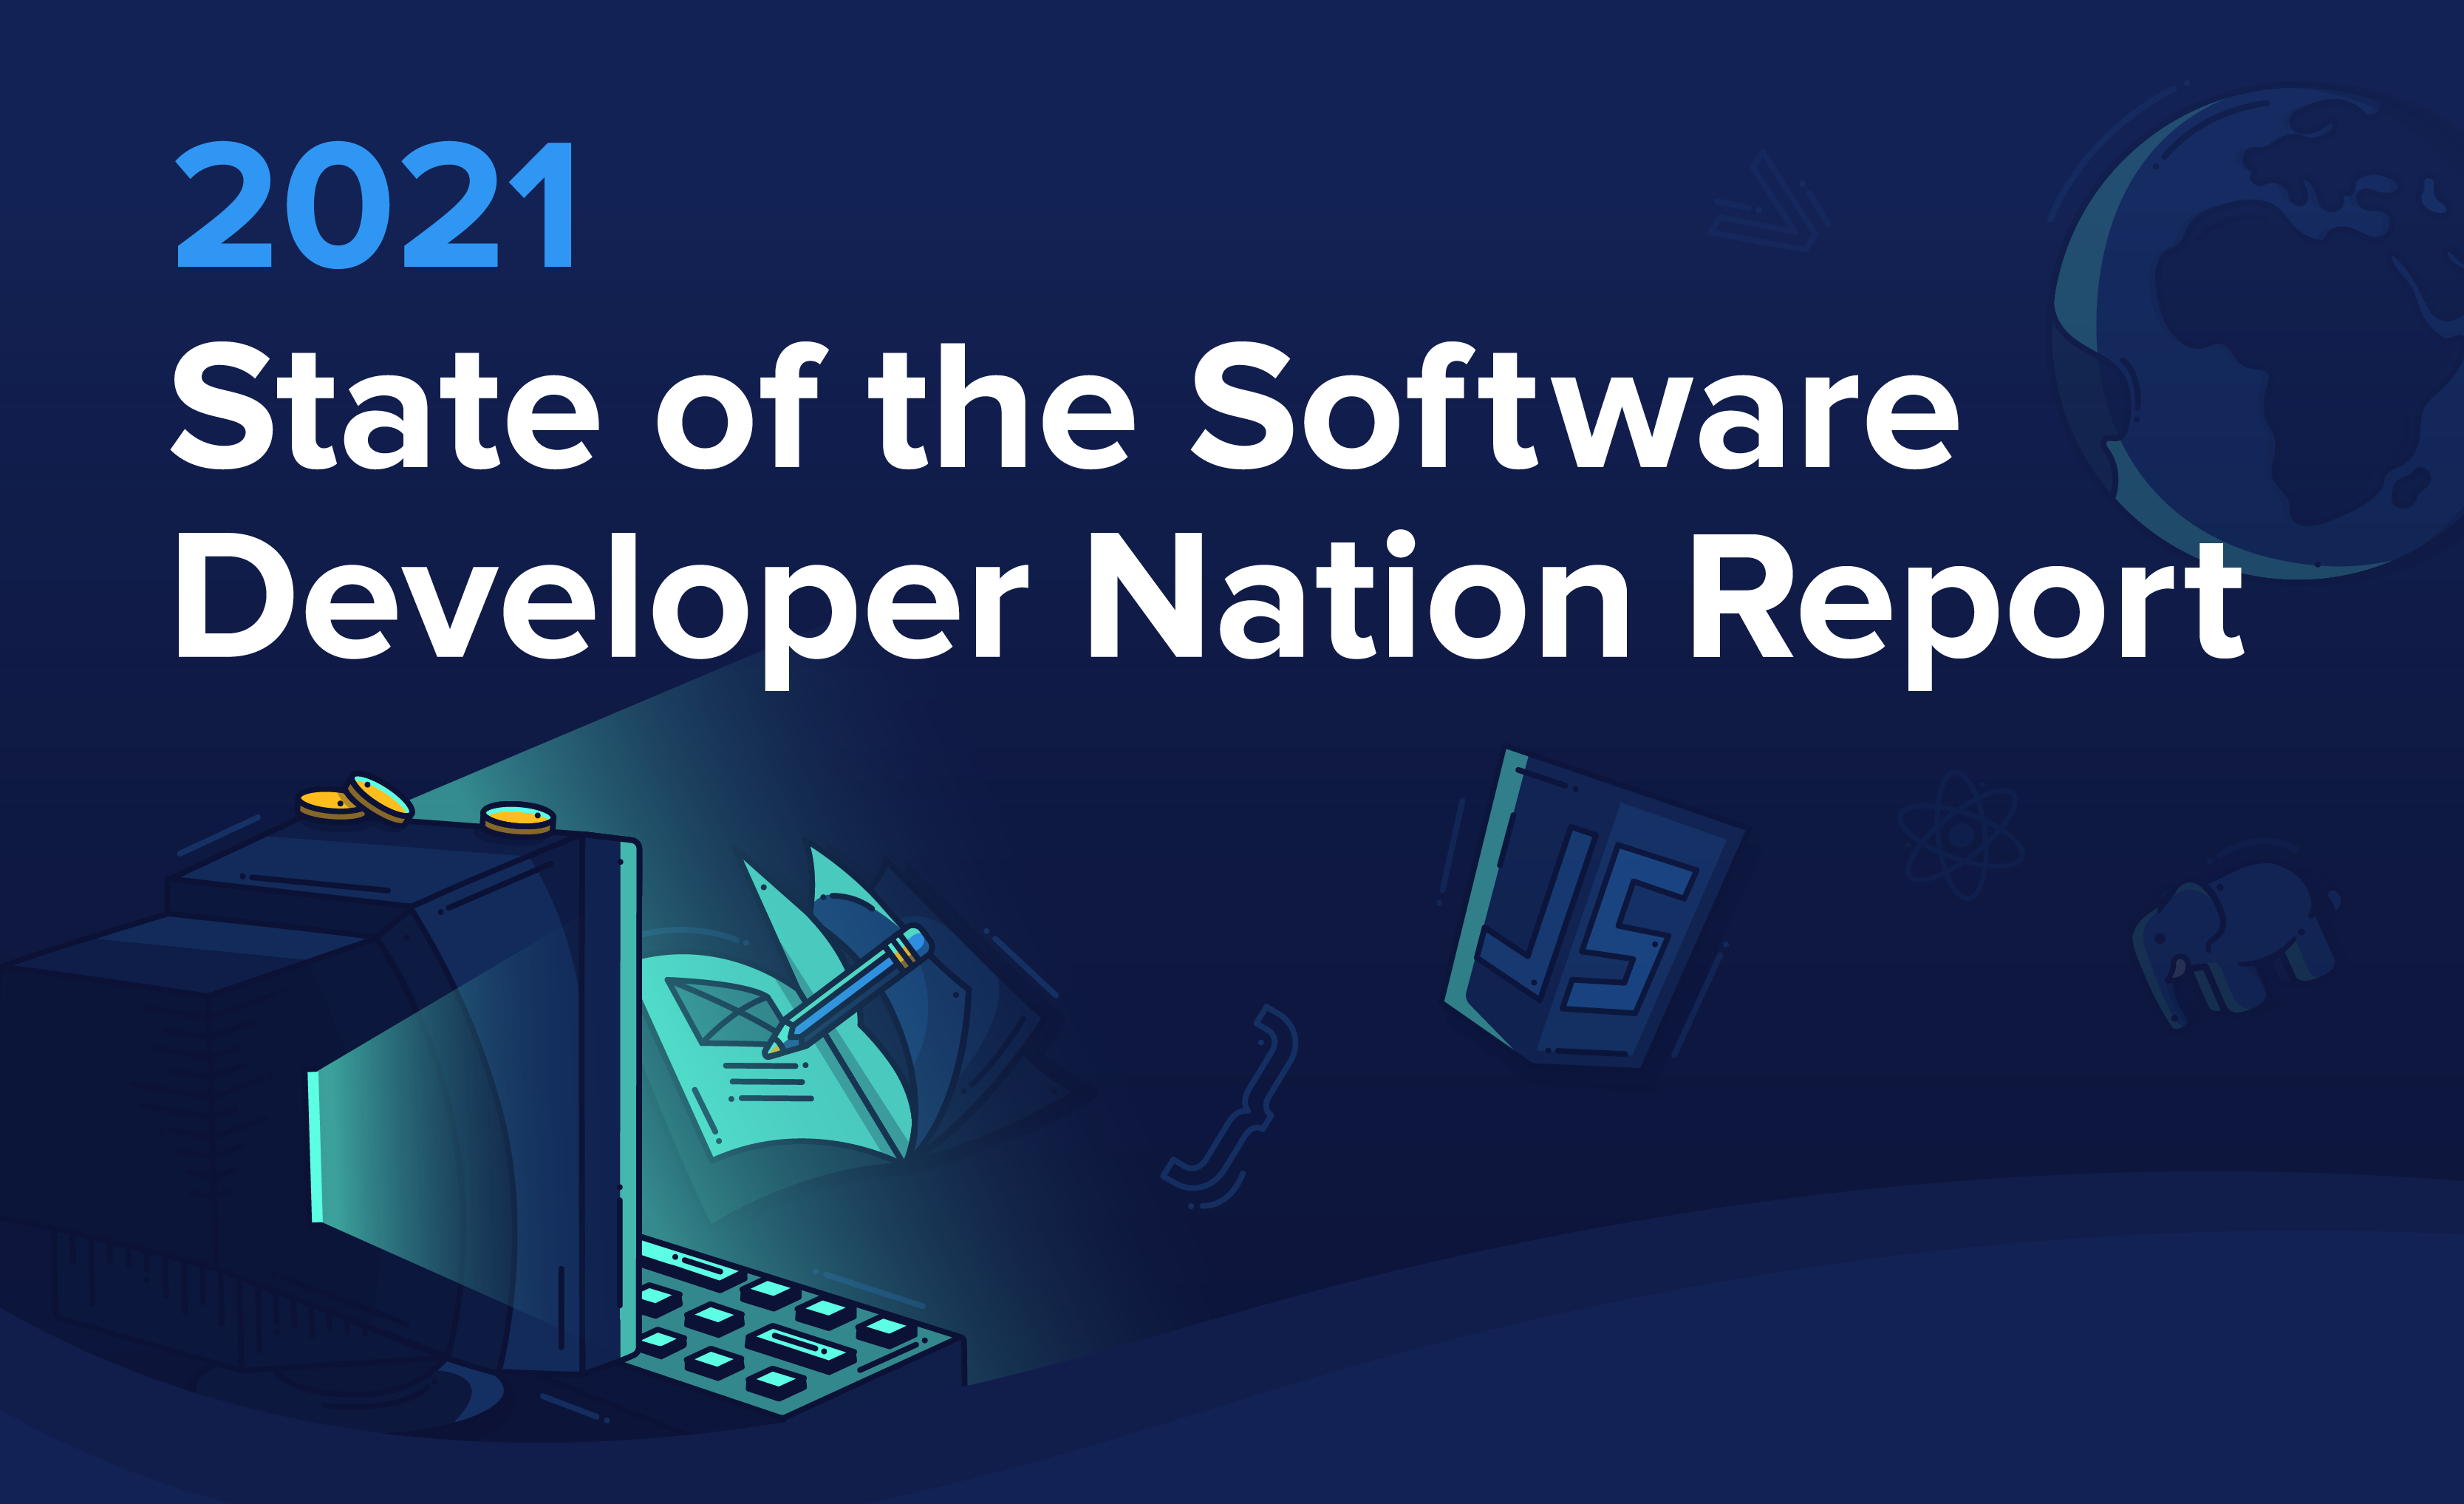 OfferZen_2021_State-of-the-Software-Developer-Nation-Report_blog-cover-image-63-2